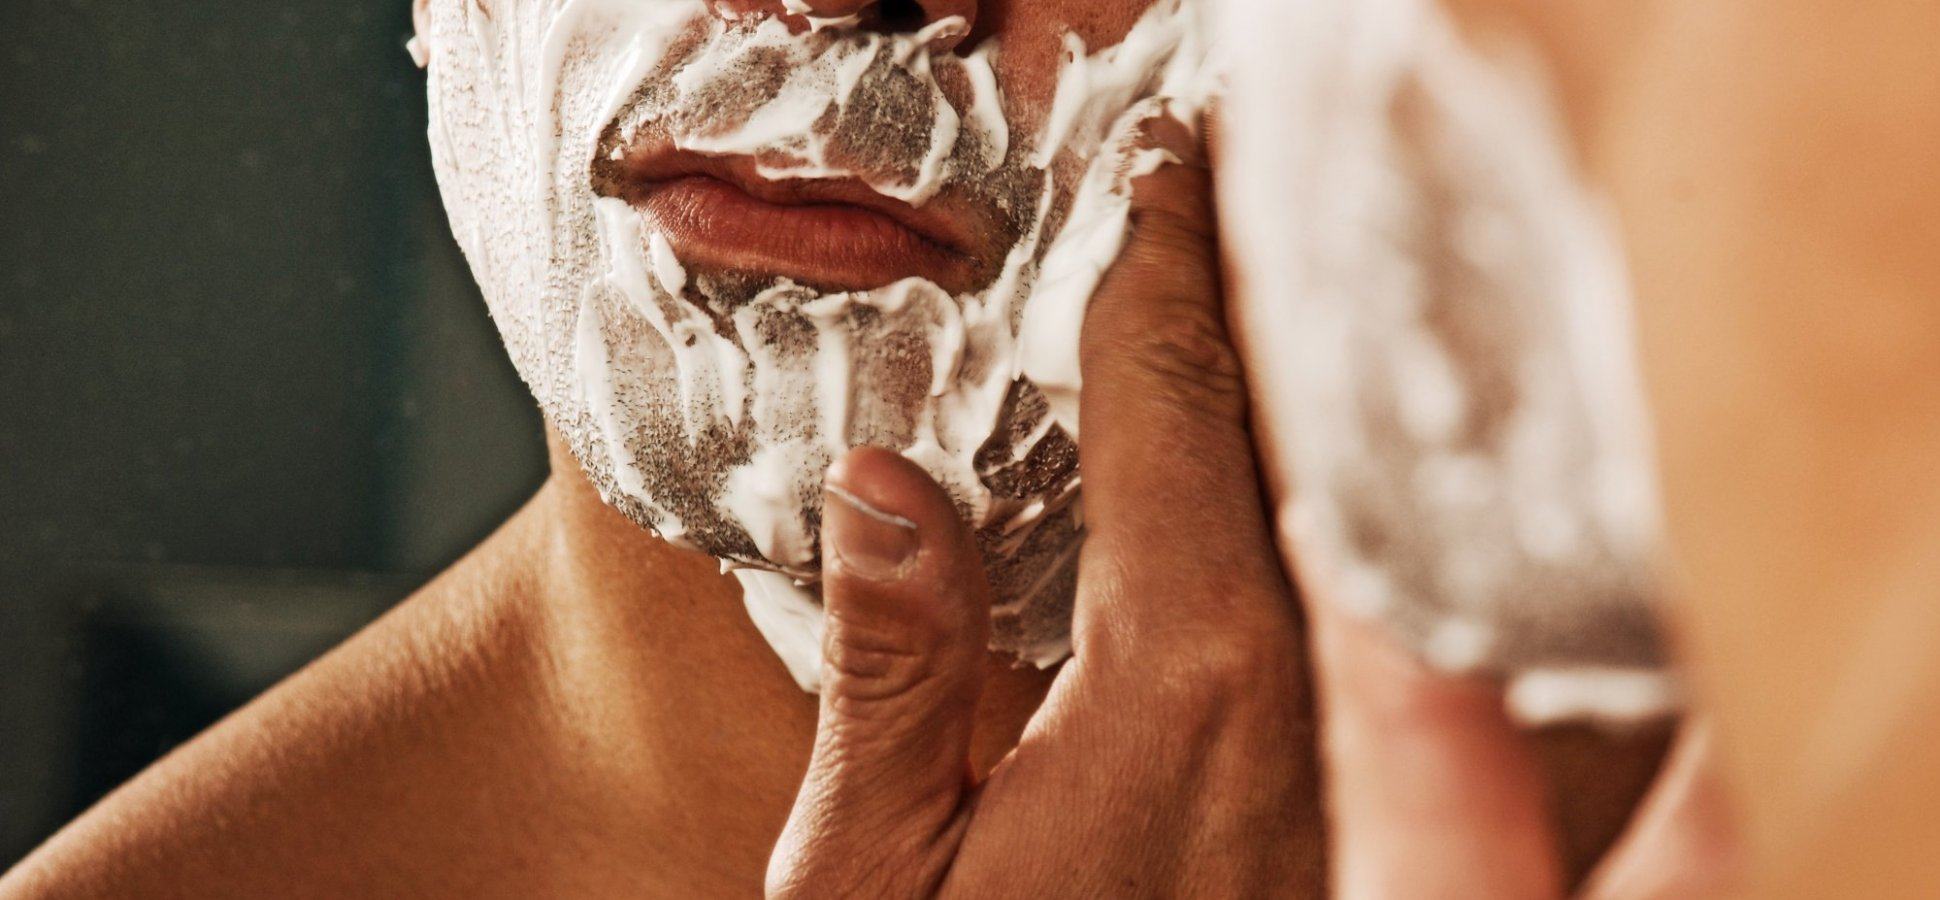 The Big Problem Dollar Shave Club Has--And How You Can Avoid It